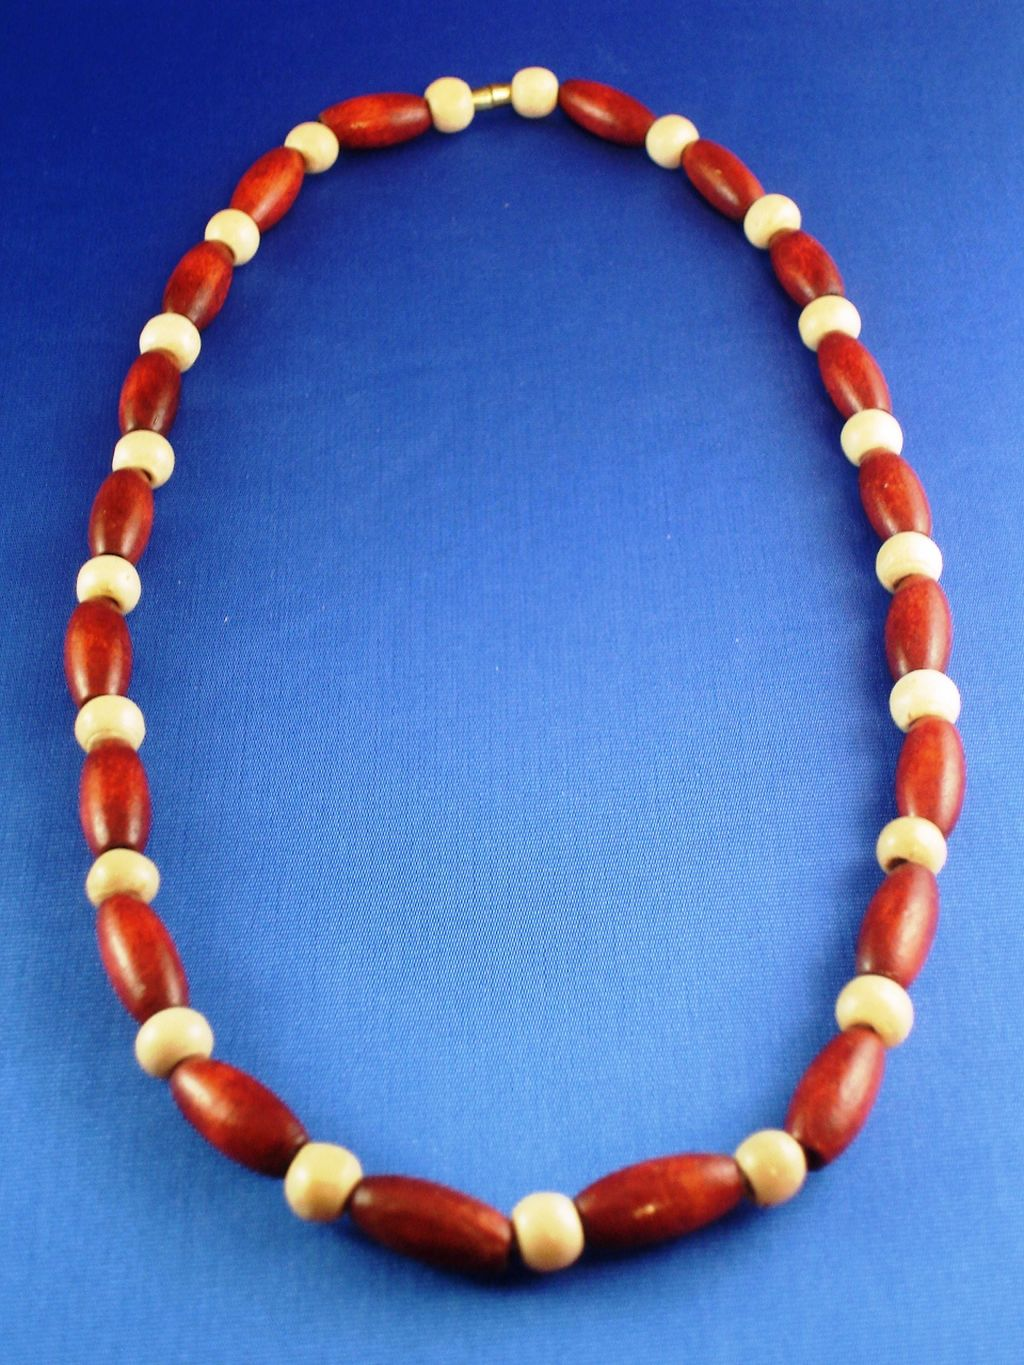 Brown & Beige Wooden Beads Necklace, European Fashion Jewelry